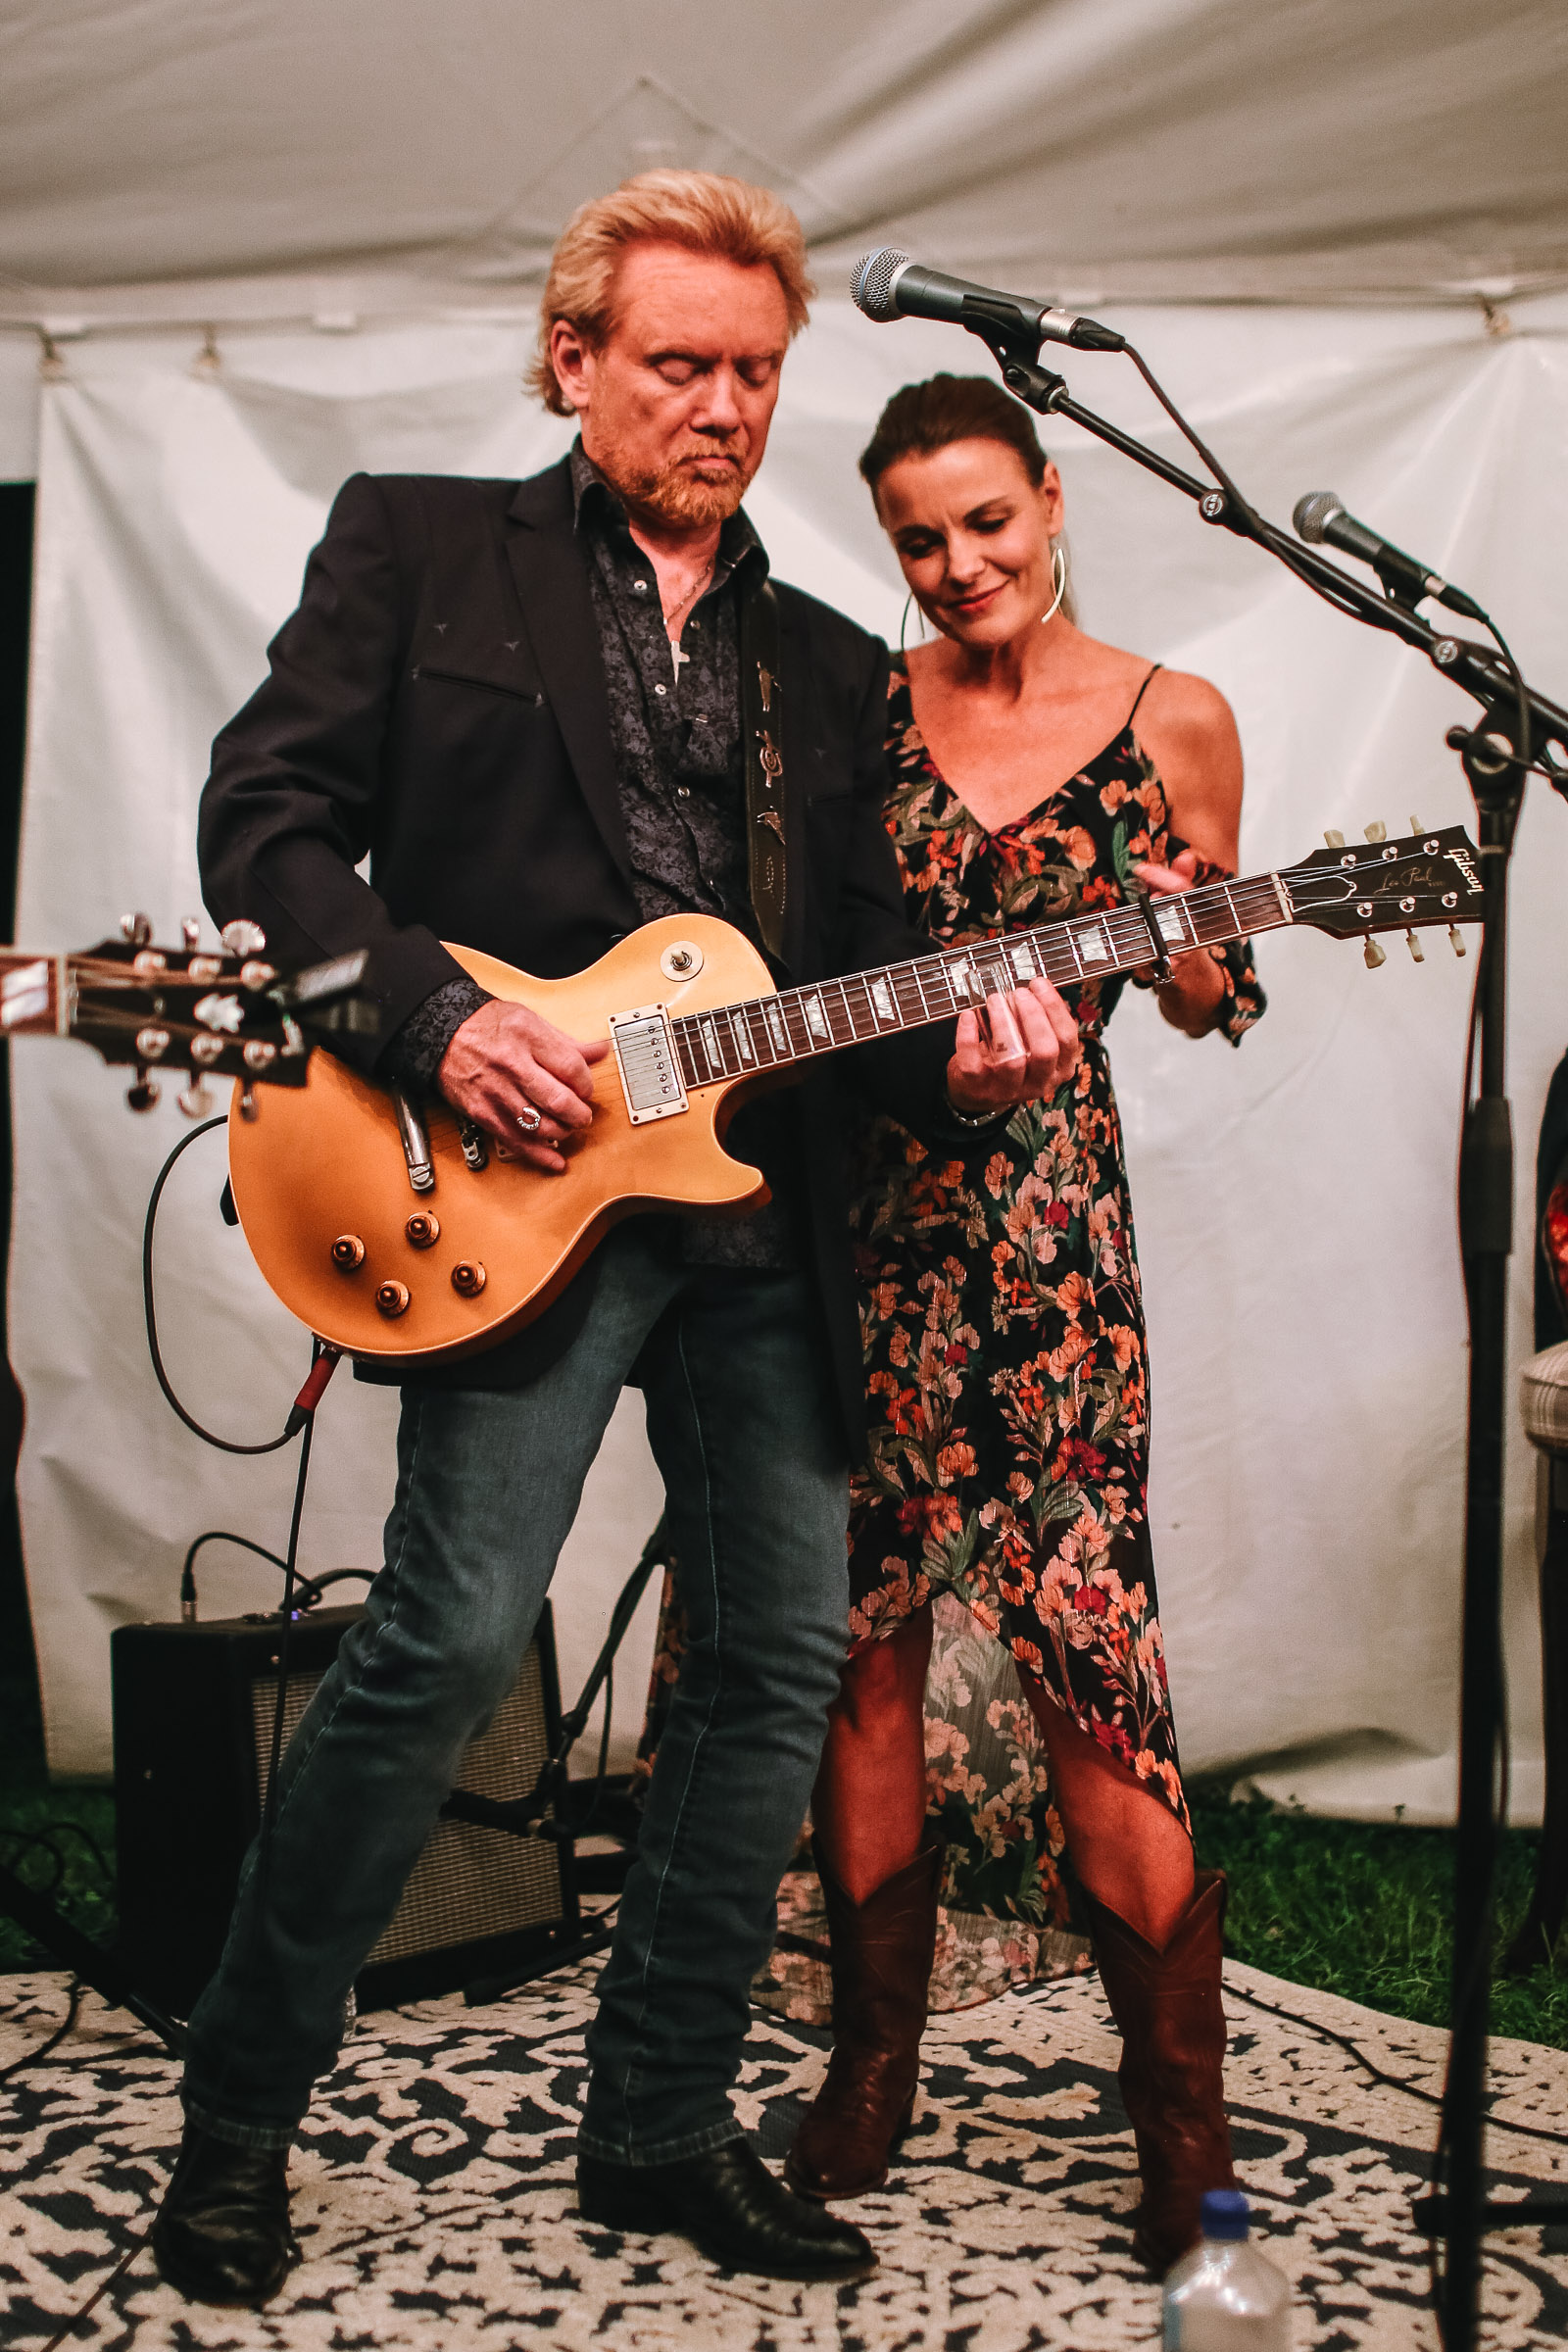 What a pair these two make! Lee Roy Parnell & Lisa Stewart.